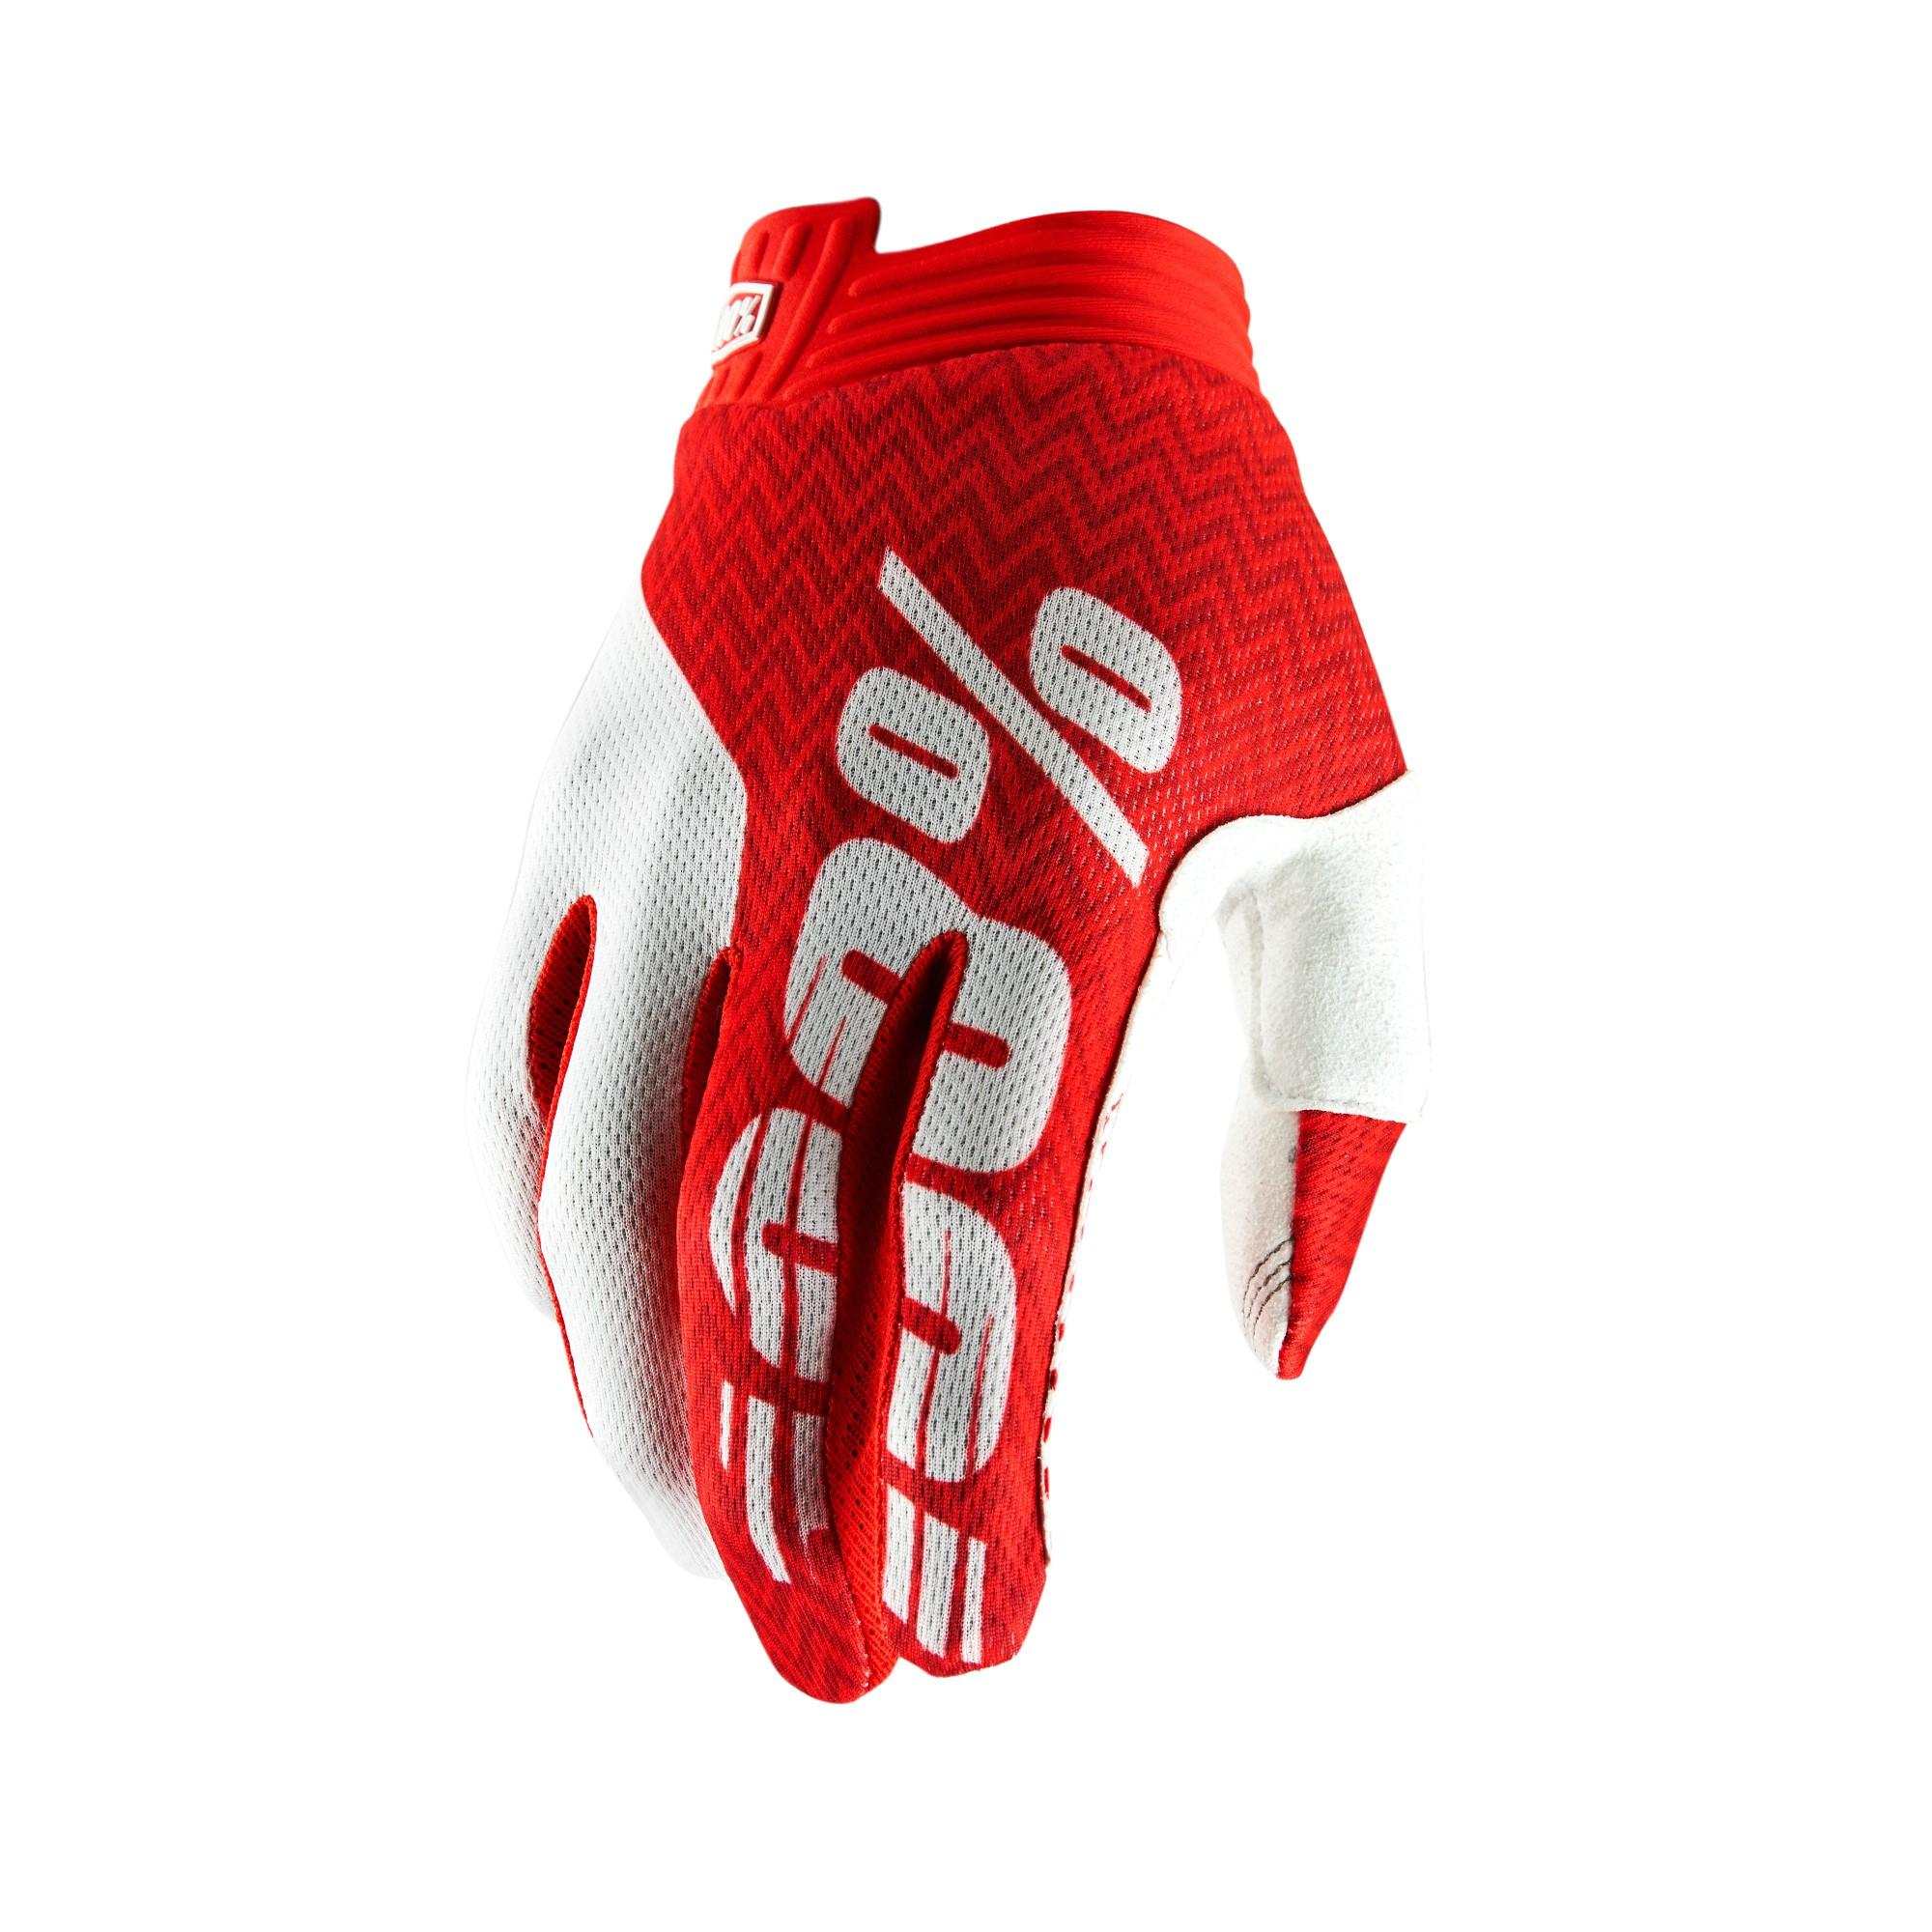 iTRACK 100% Glove Red/White